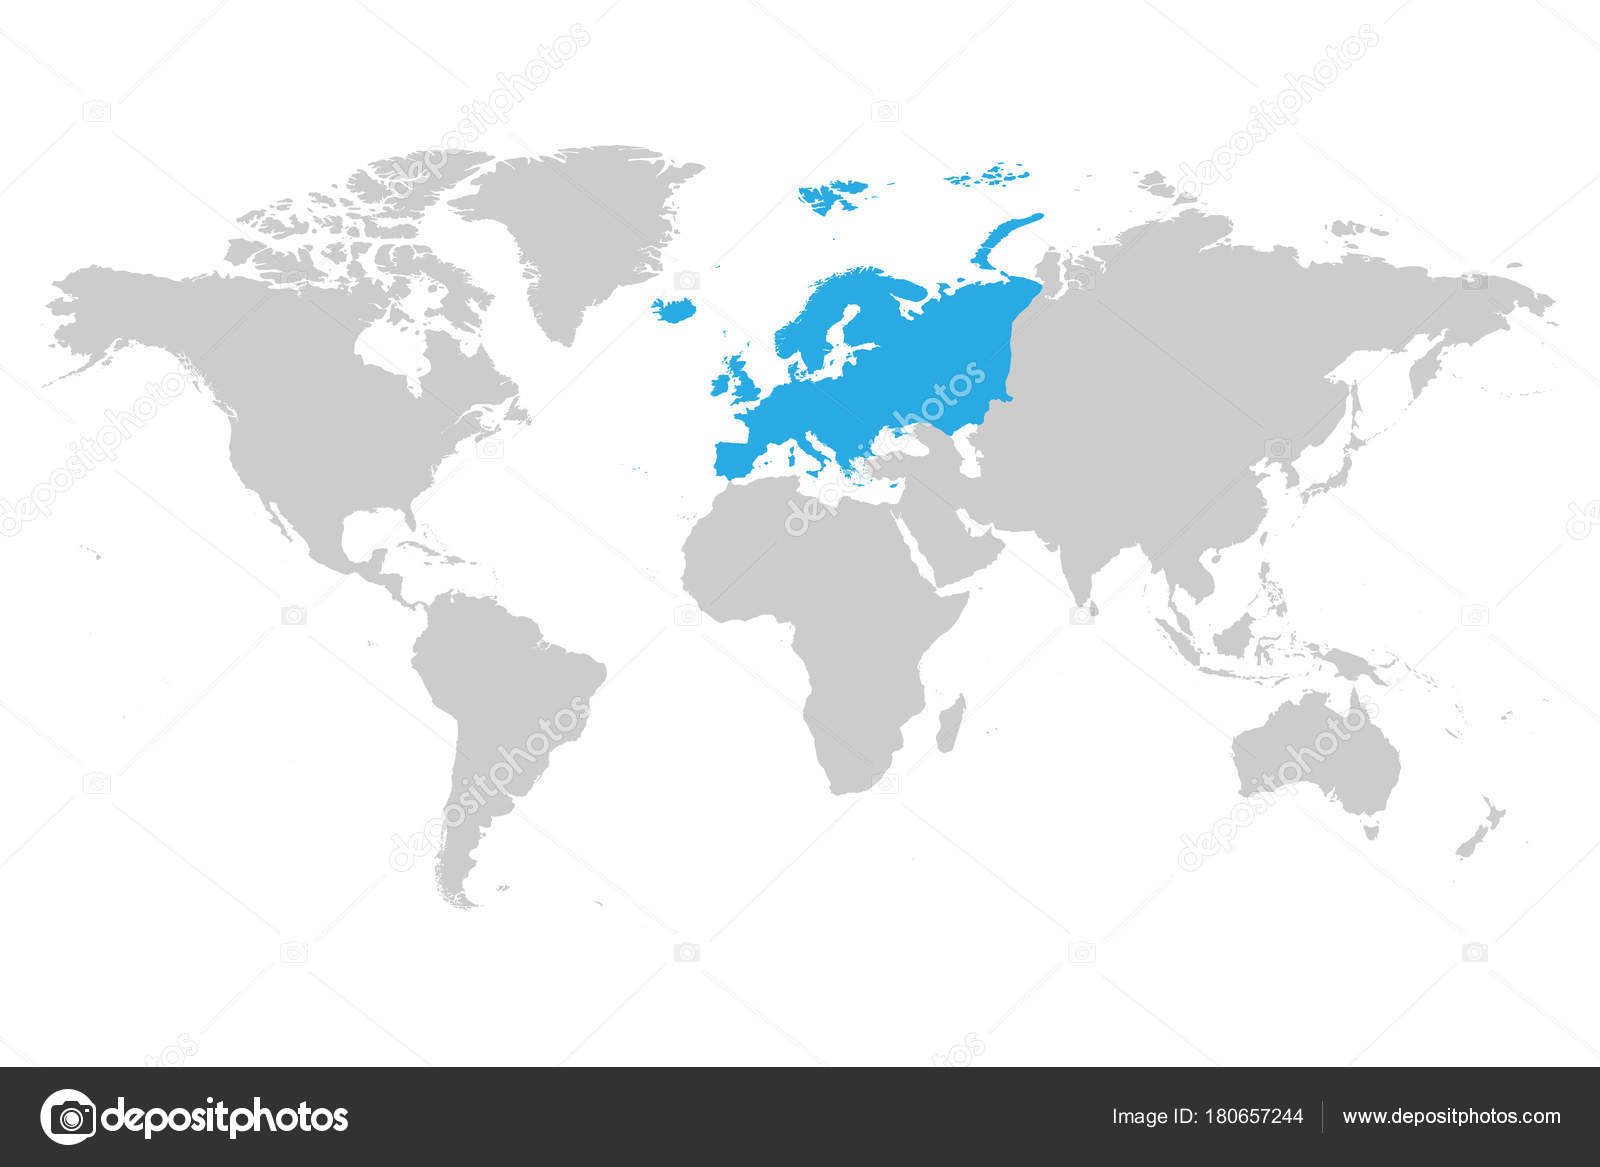 Europe continent blue marked in grey silhouette of world map simple europe continent blue marked in grey silhouette of world map simple flat vector illustration gumiabroncs Gallery